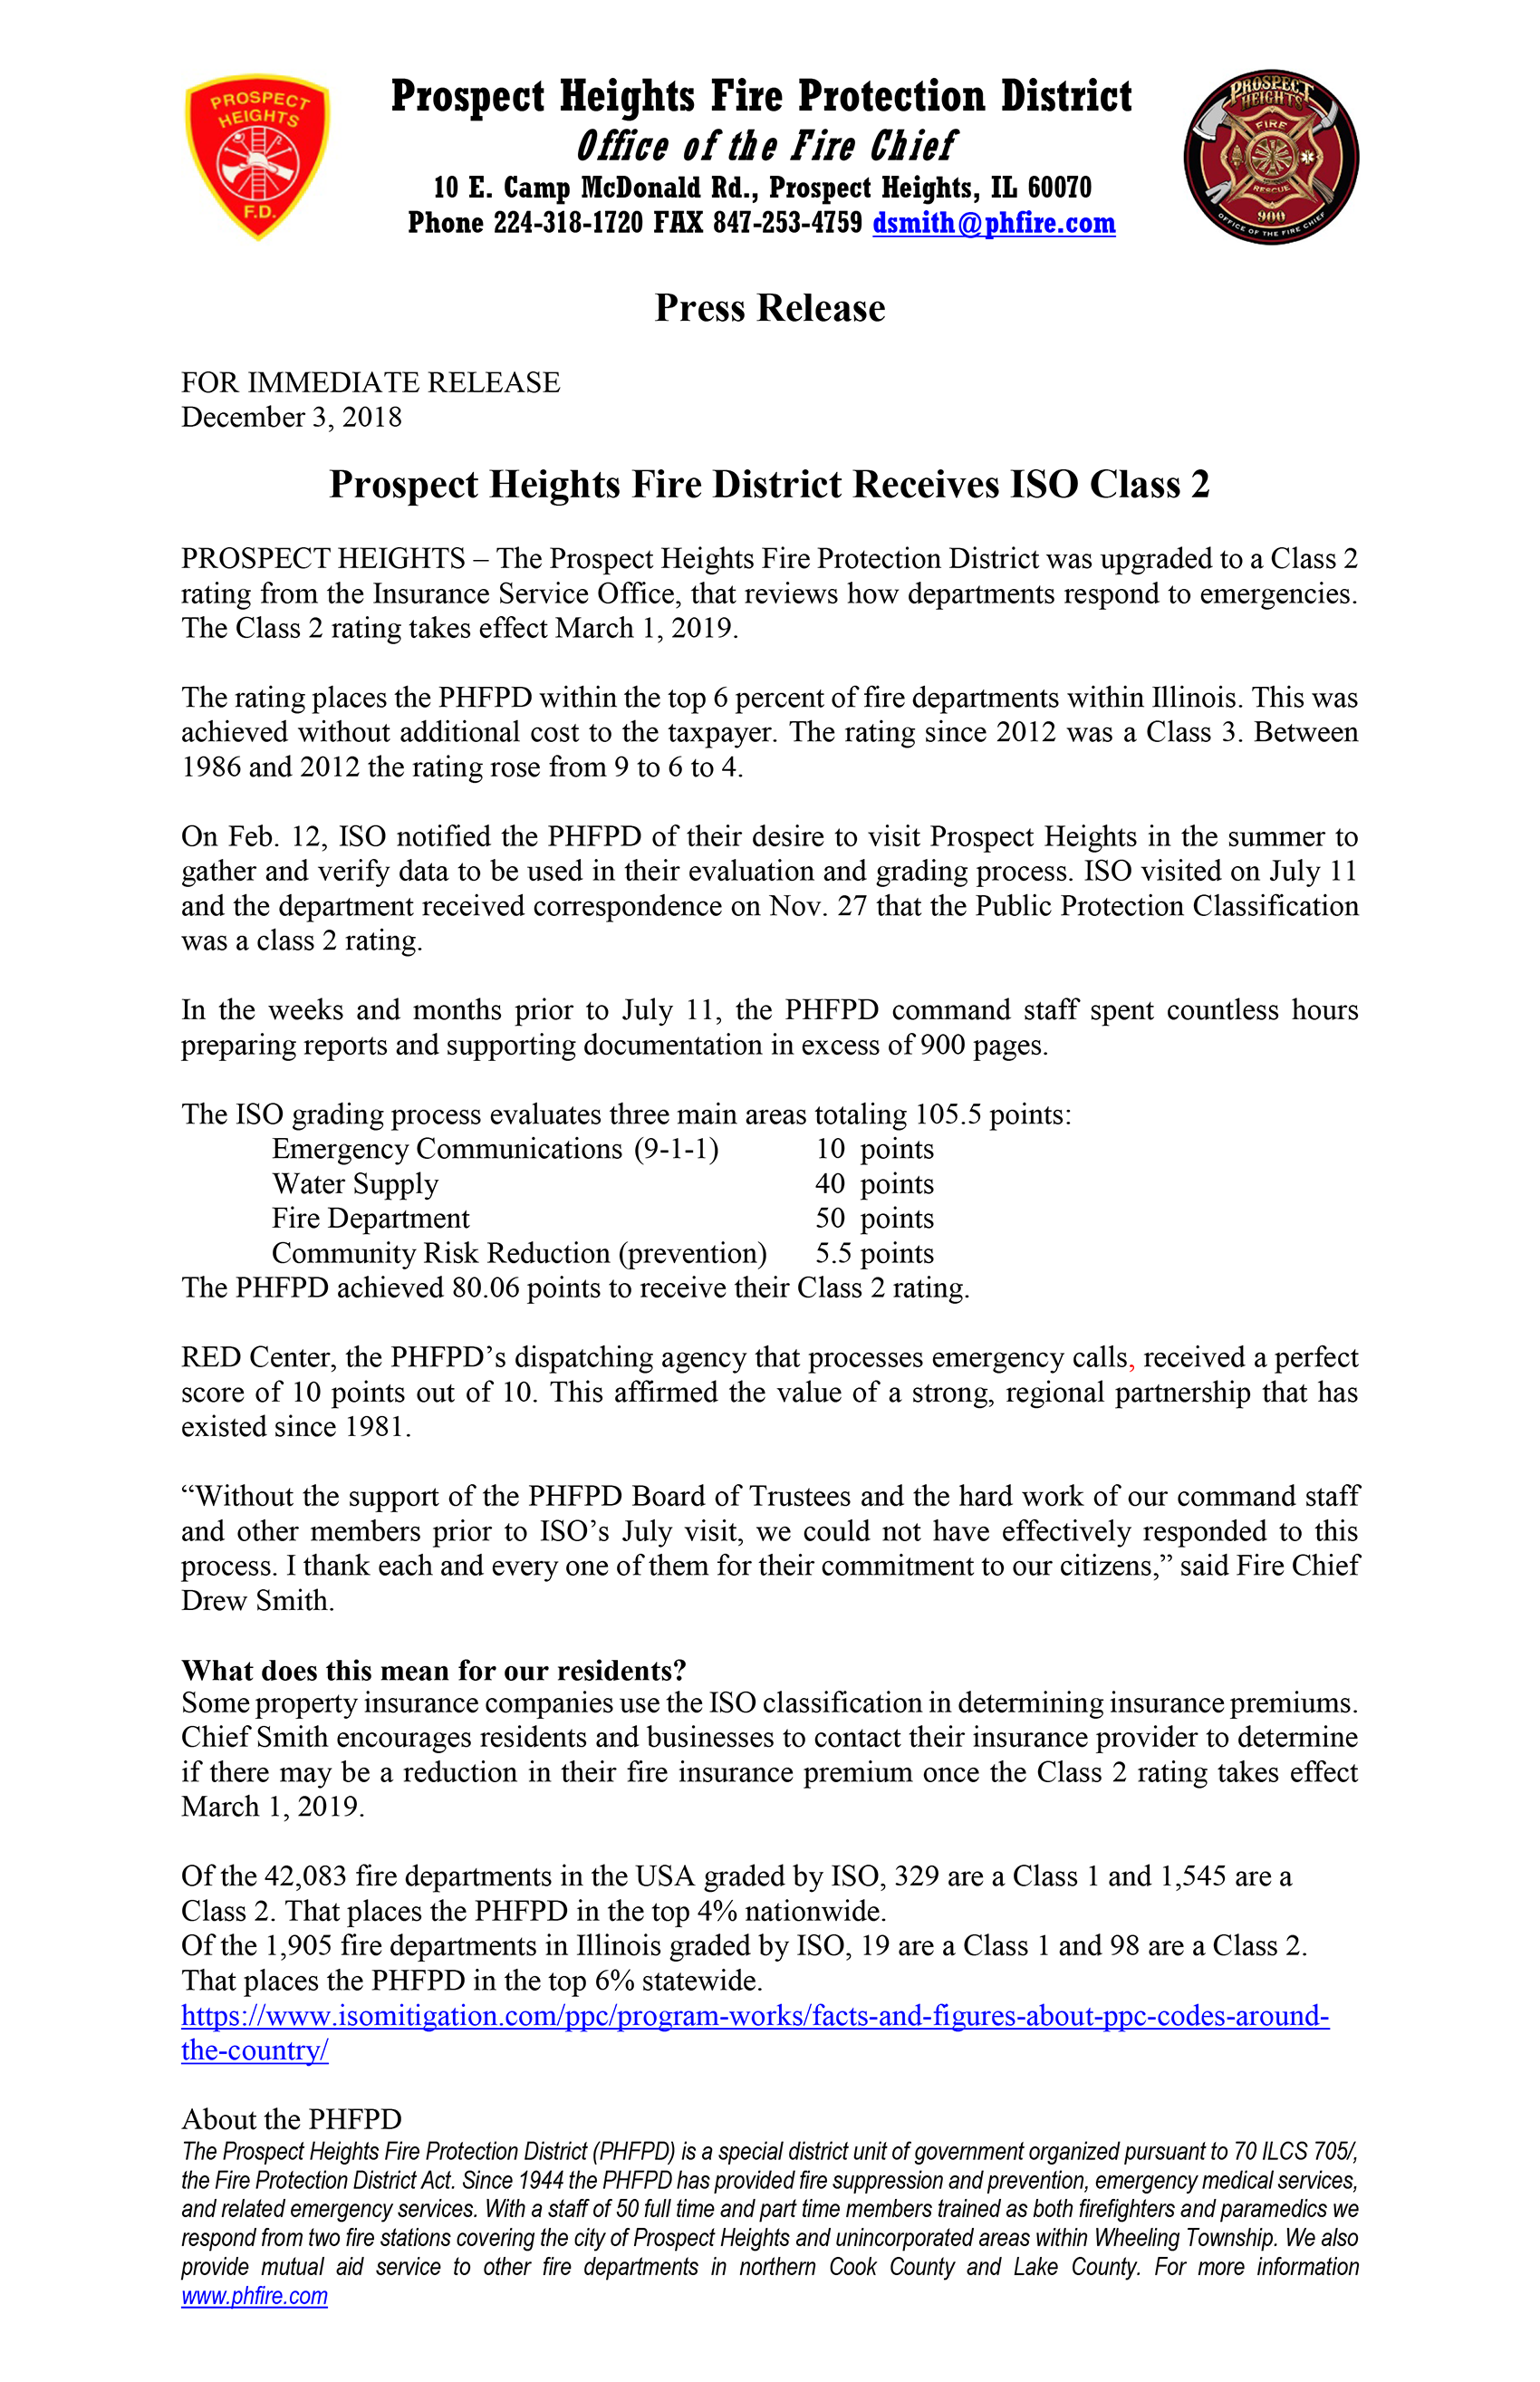 Prospect Heights Fire Protection Districts receives ISO Class 2 rating